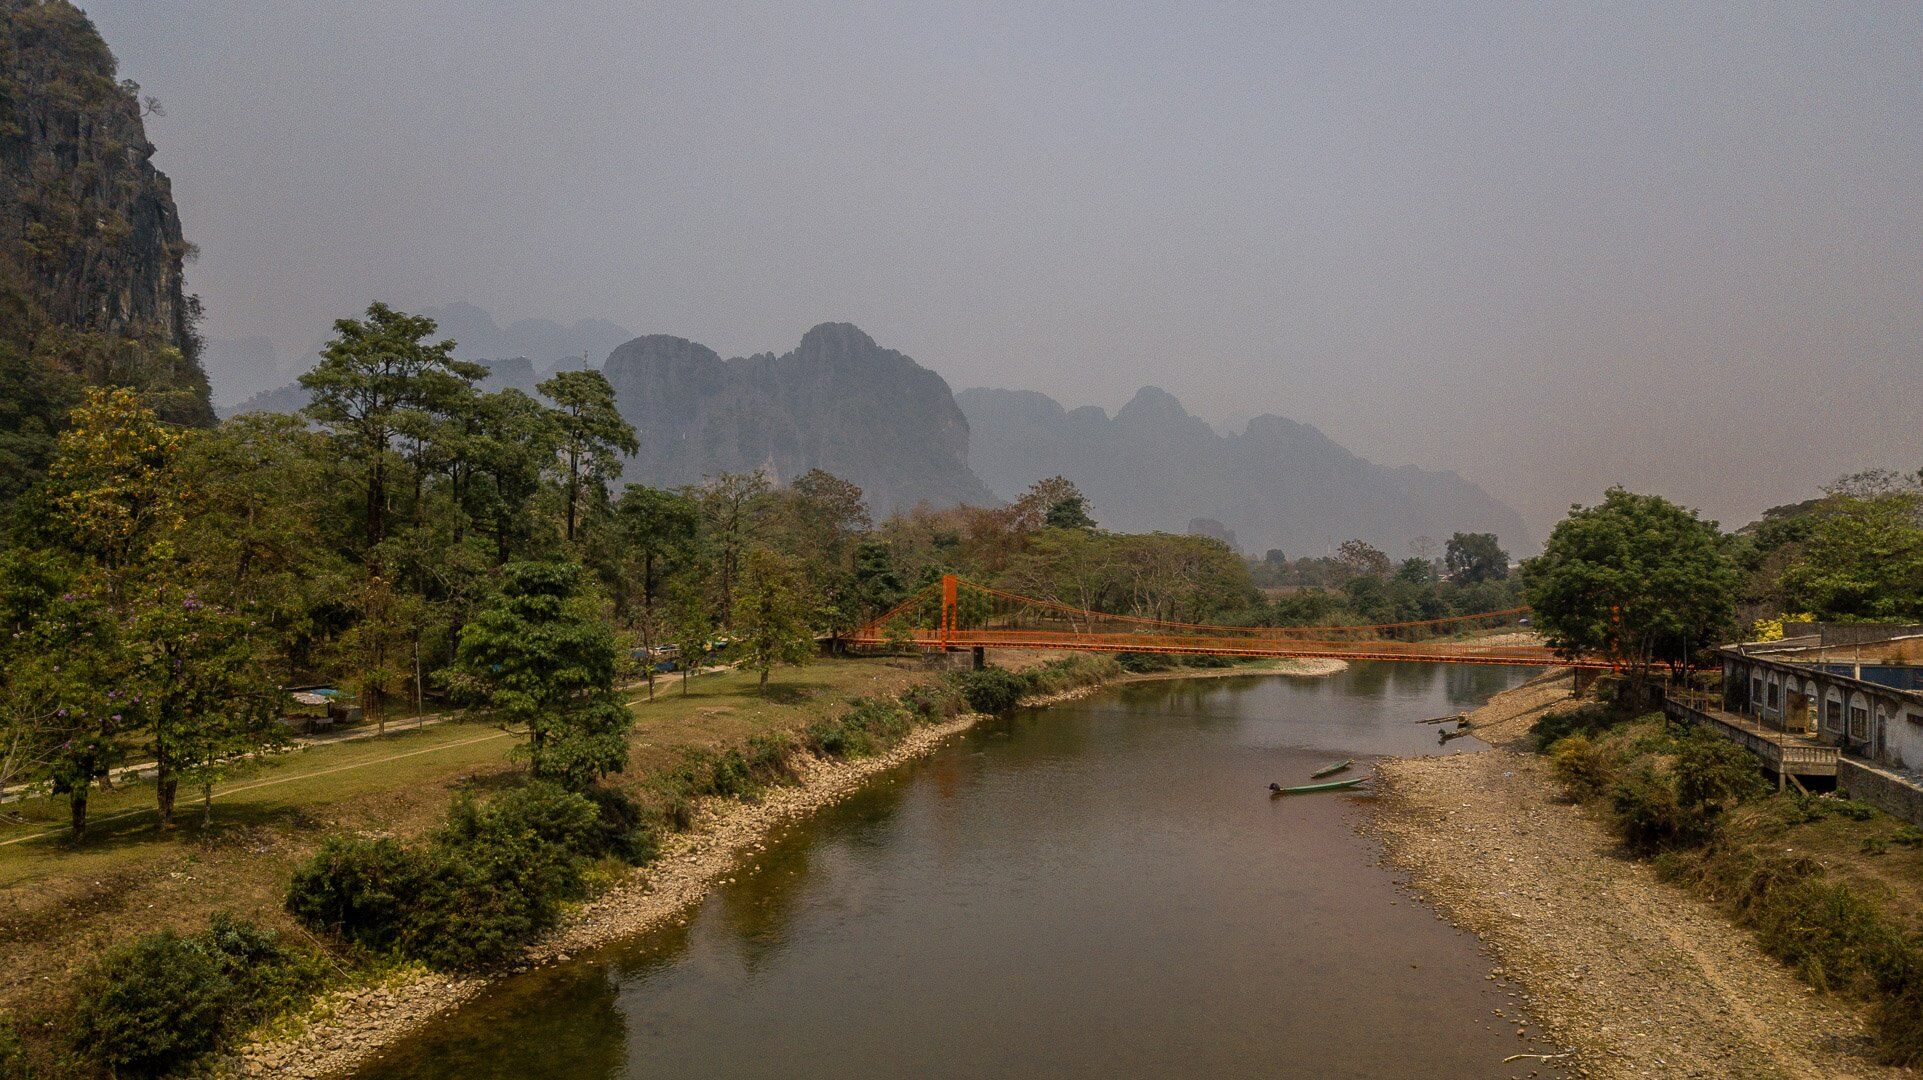 View of Vang Vieng in Laos